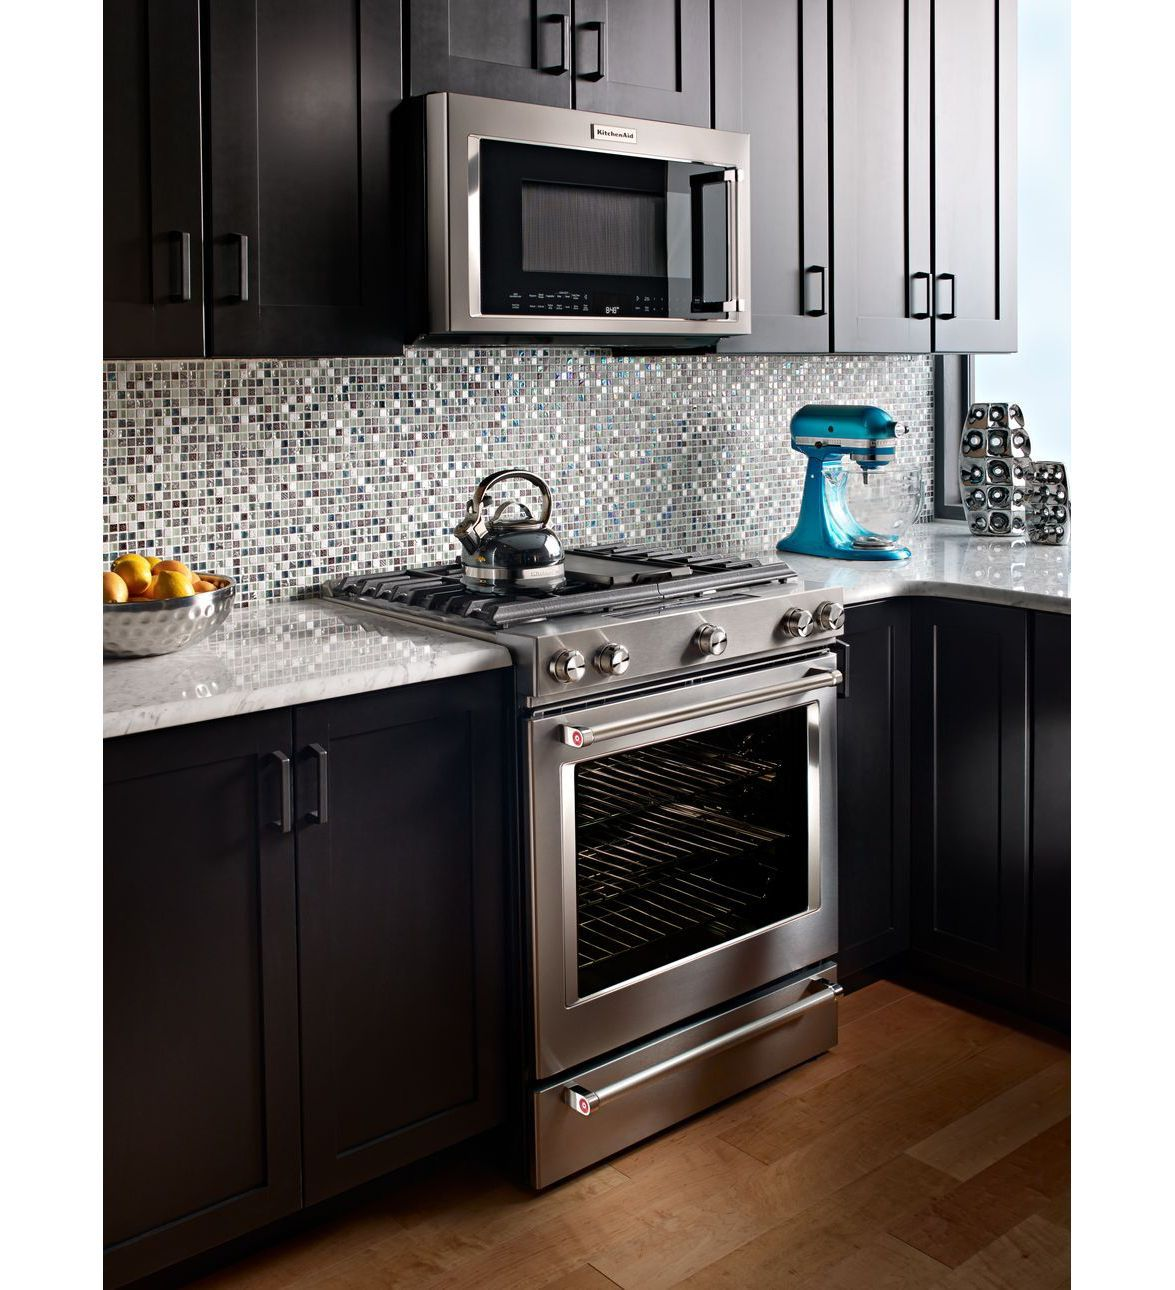 Lovely Kitchenaid Cooking Ranges, Kitchenaid Slide In Ranges On Sale Everyday At  Plessers. KitchenAid 30 Inch Slide In Gas Range Stainless Steel